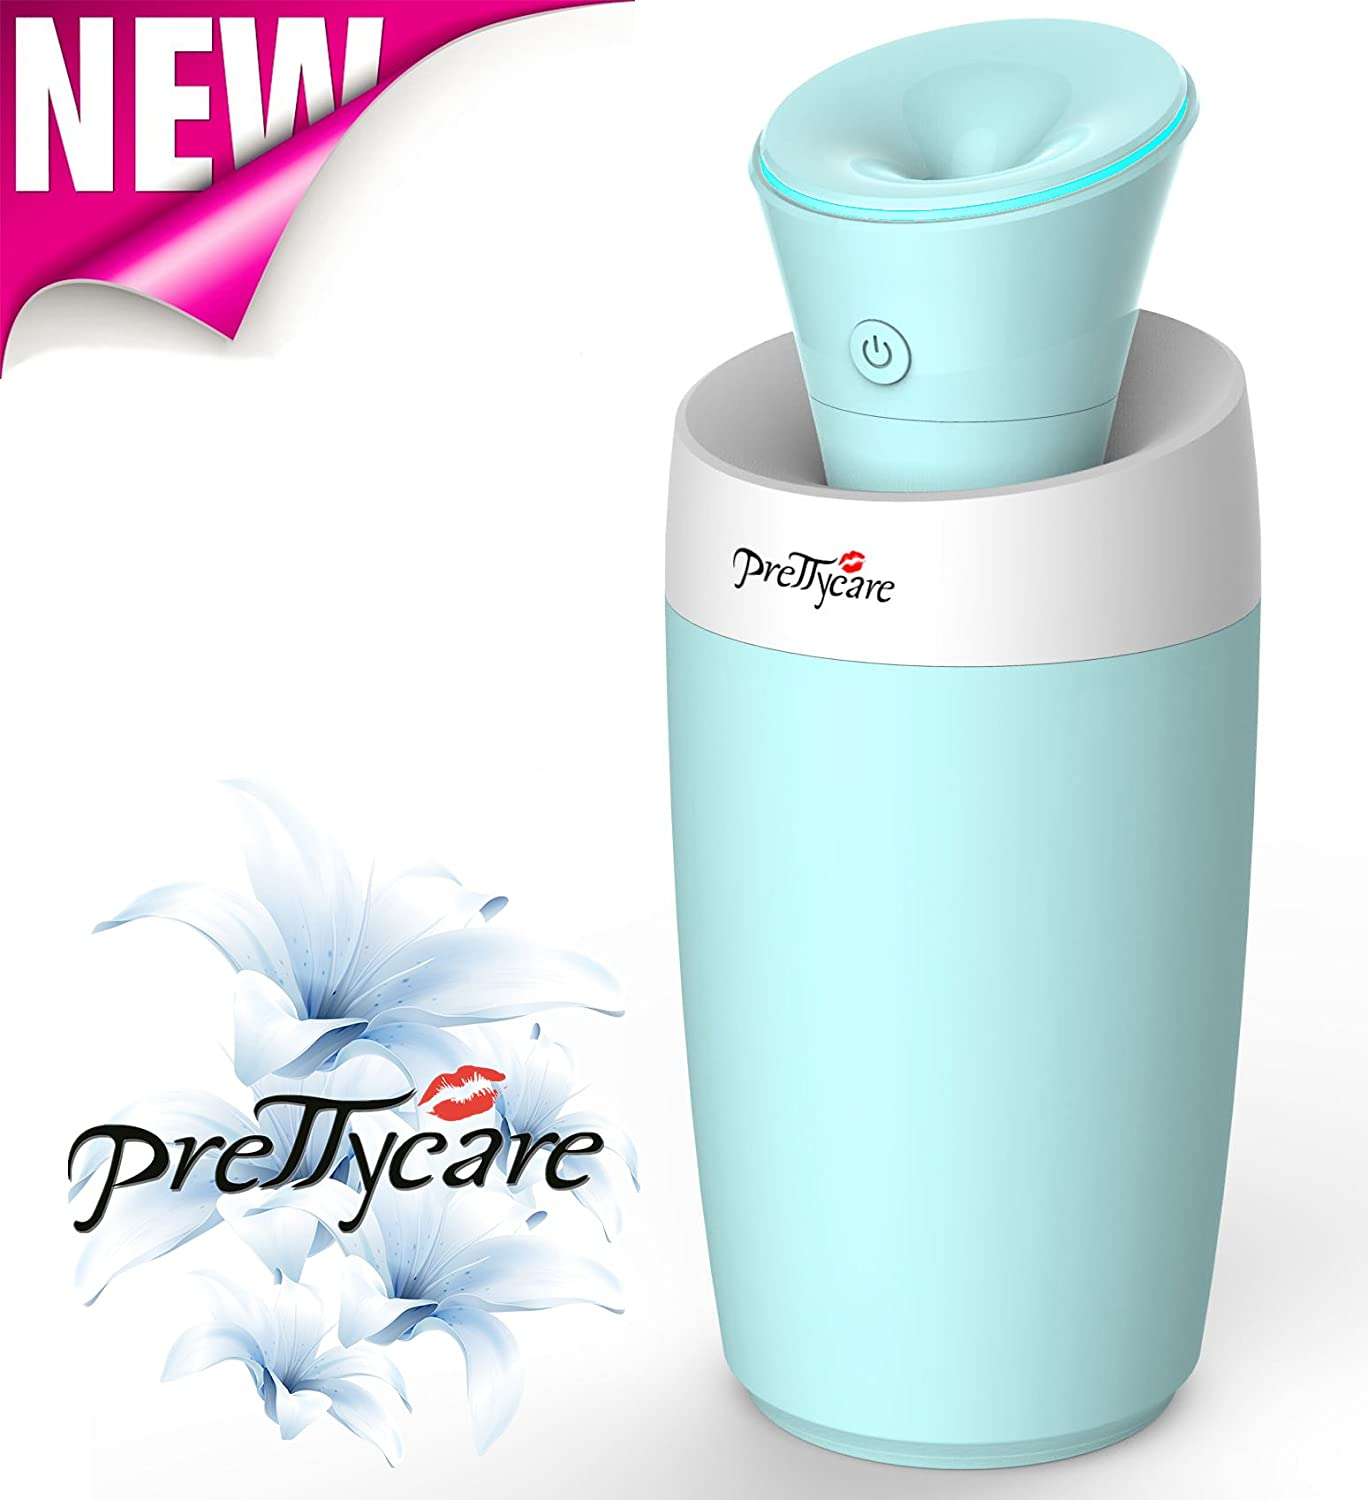 Cool Mist Ultrasonic Humidifier- New Design By PrettyCare - Personal Humidifier - Portable Humidifier - Mini Travel Air Humidifier - Quiet for Baby Room, Home, Car, Face, Office + Water Bottle